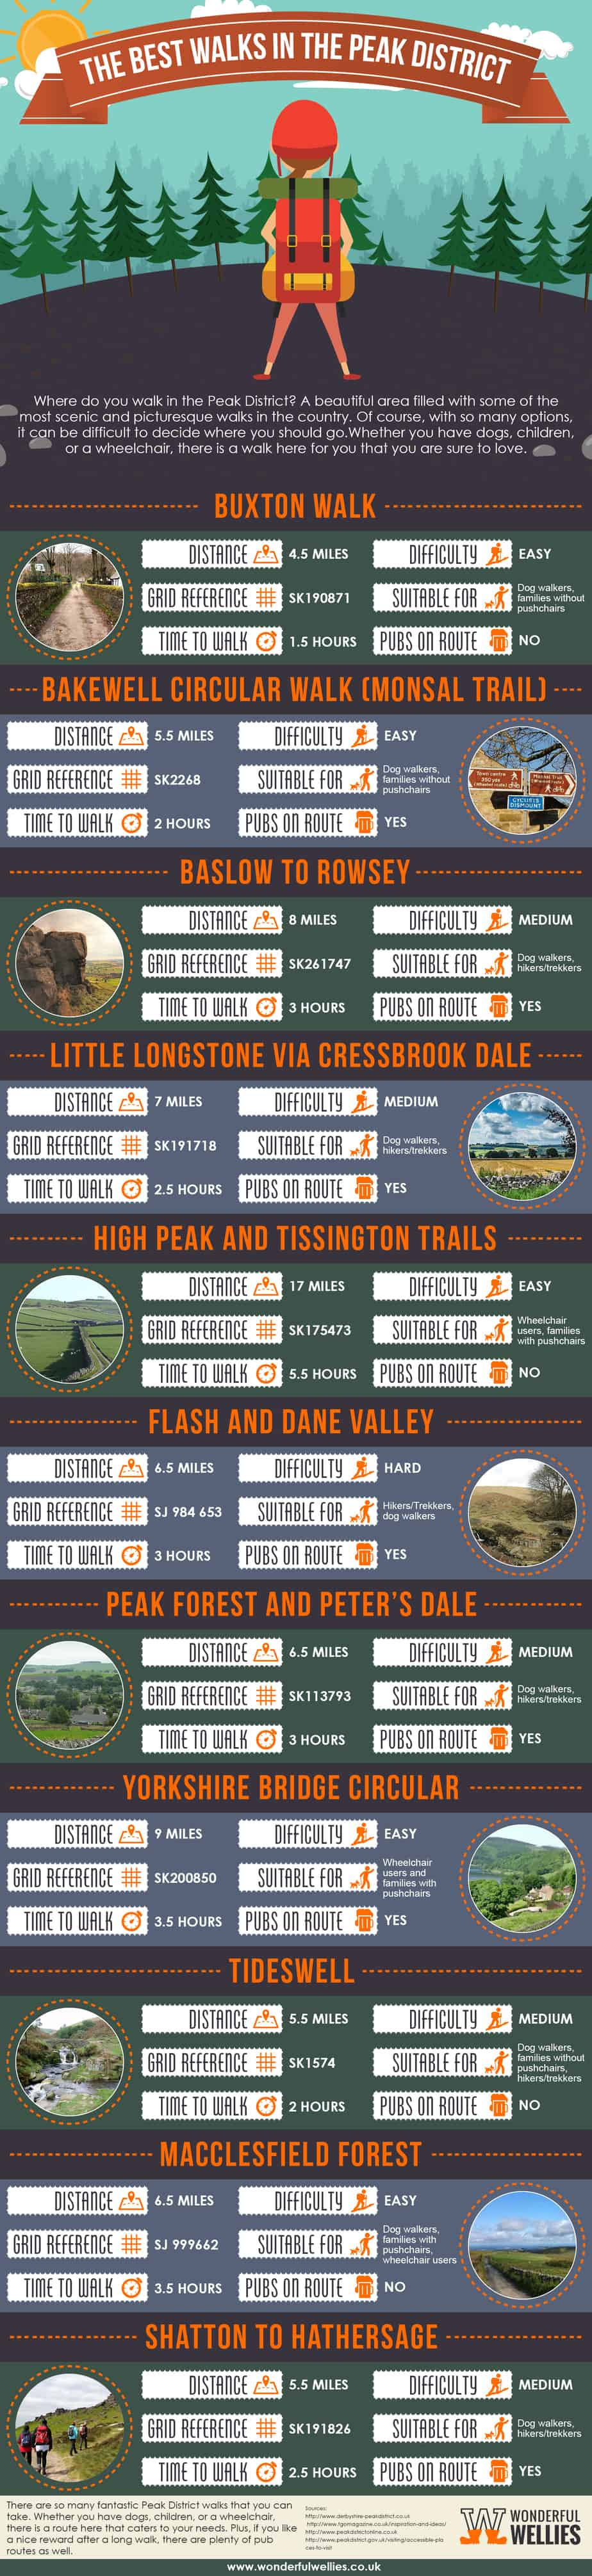 What are the Best Walks in the Peak District?